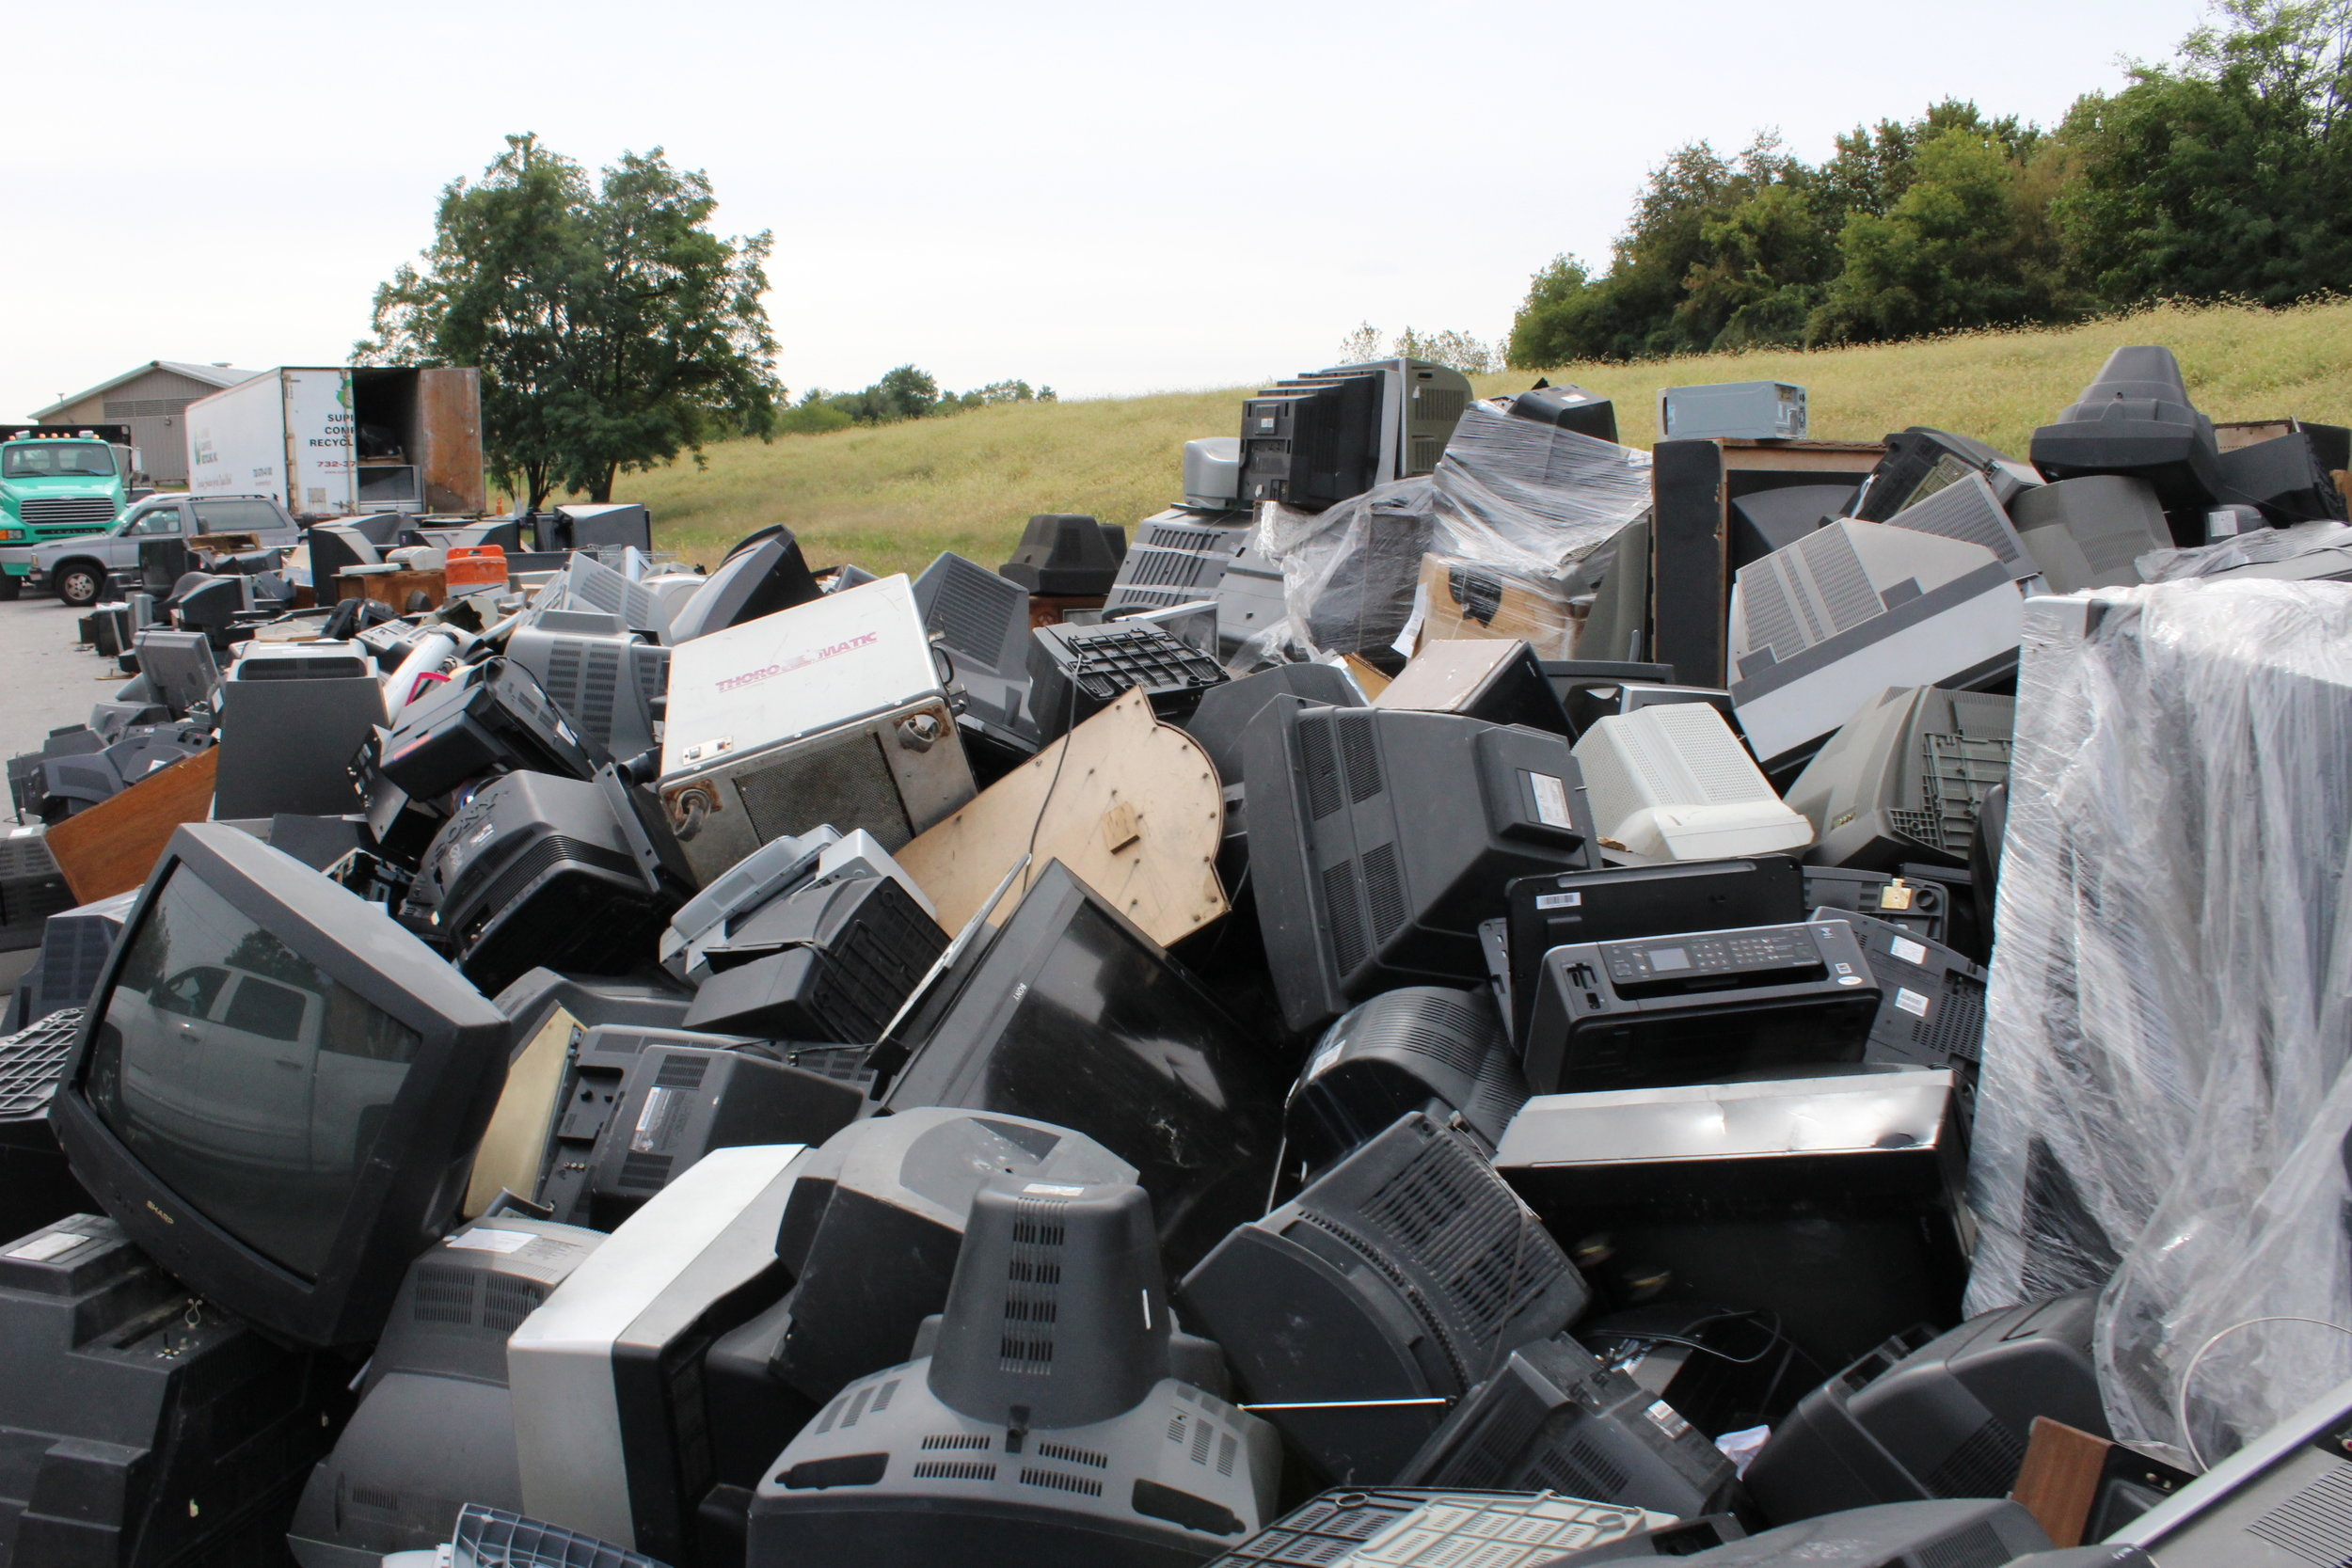 A collection of E-Waste -Piled up old CRTs, stereo equipment, and computer systems.